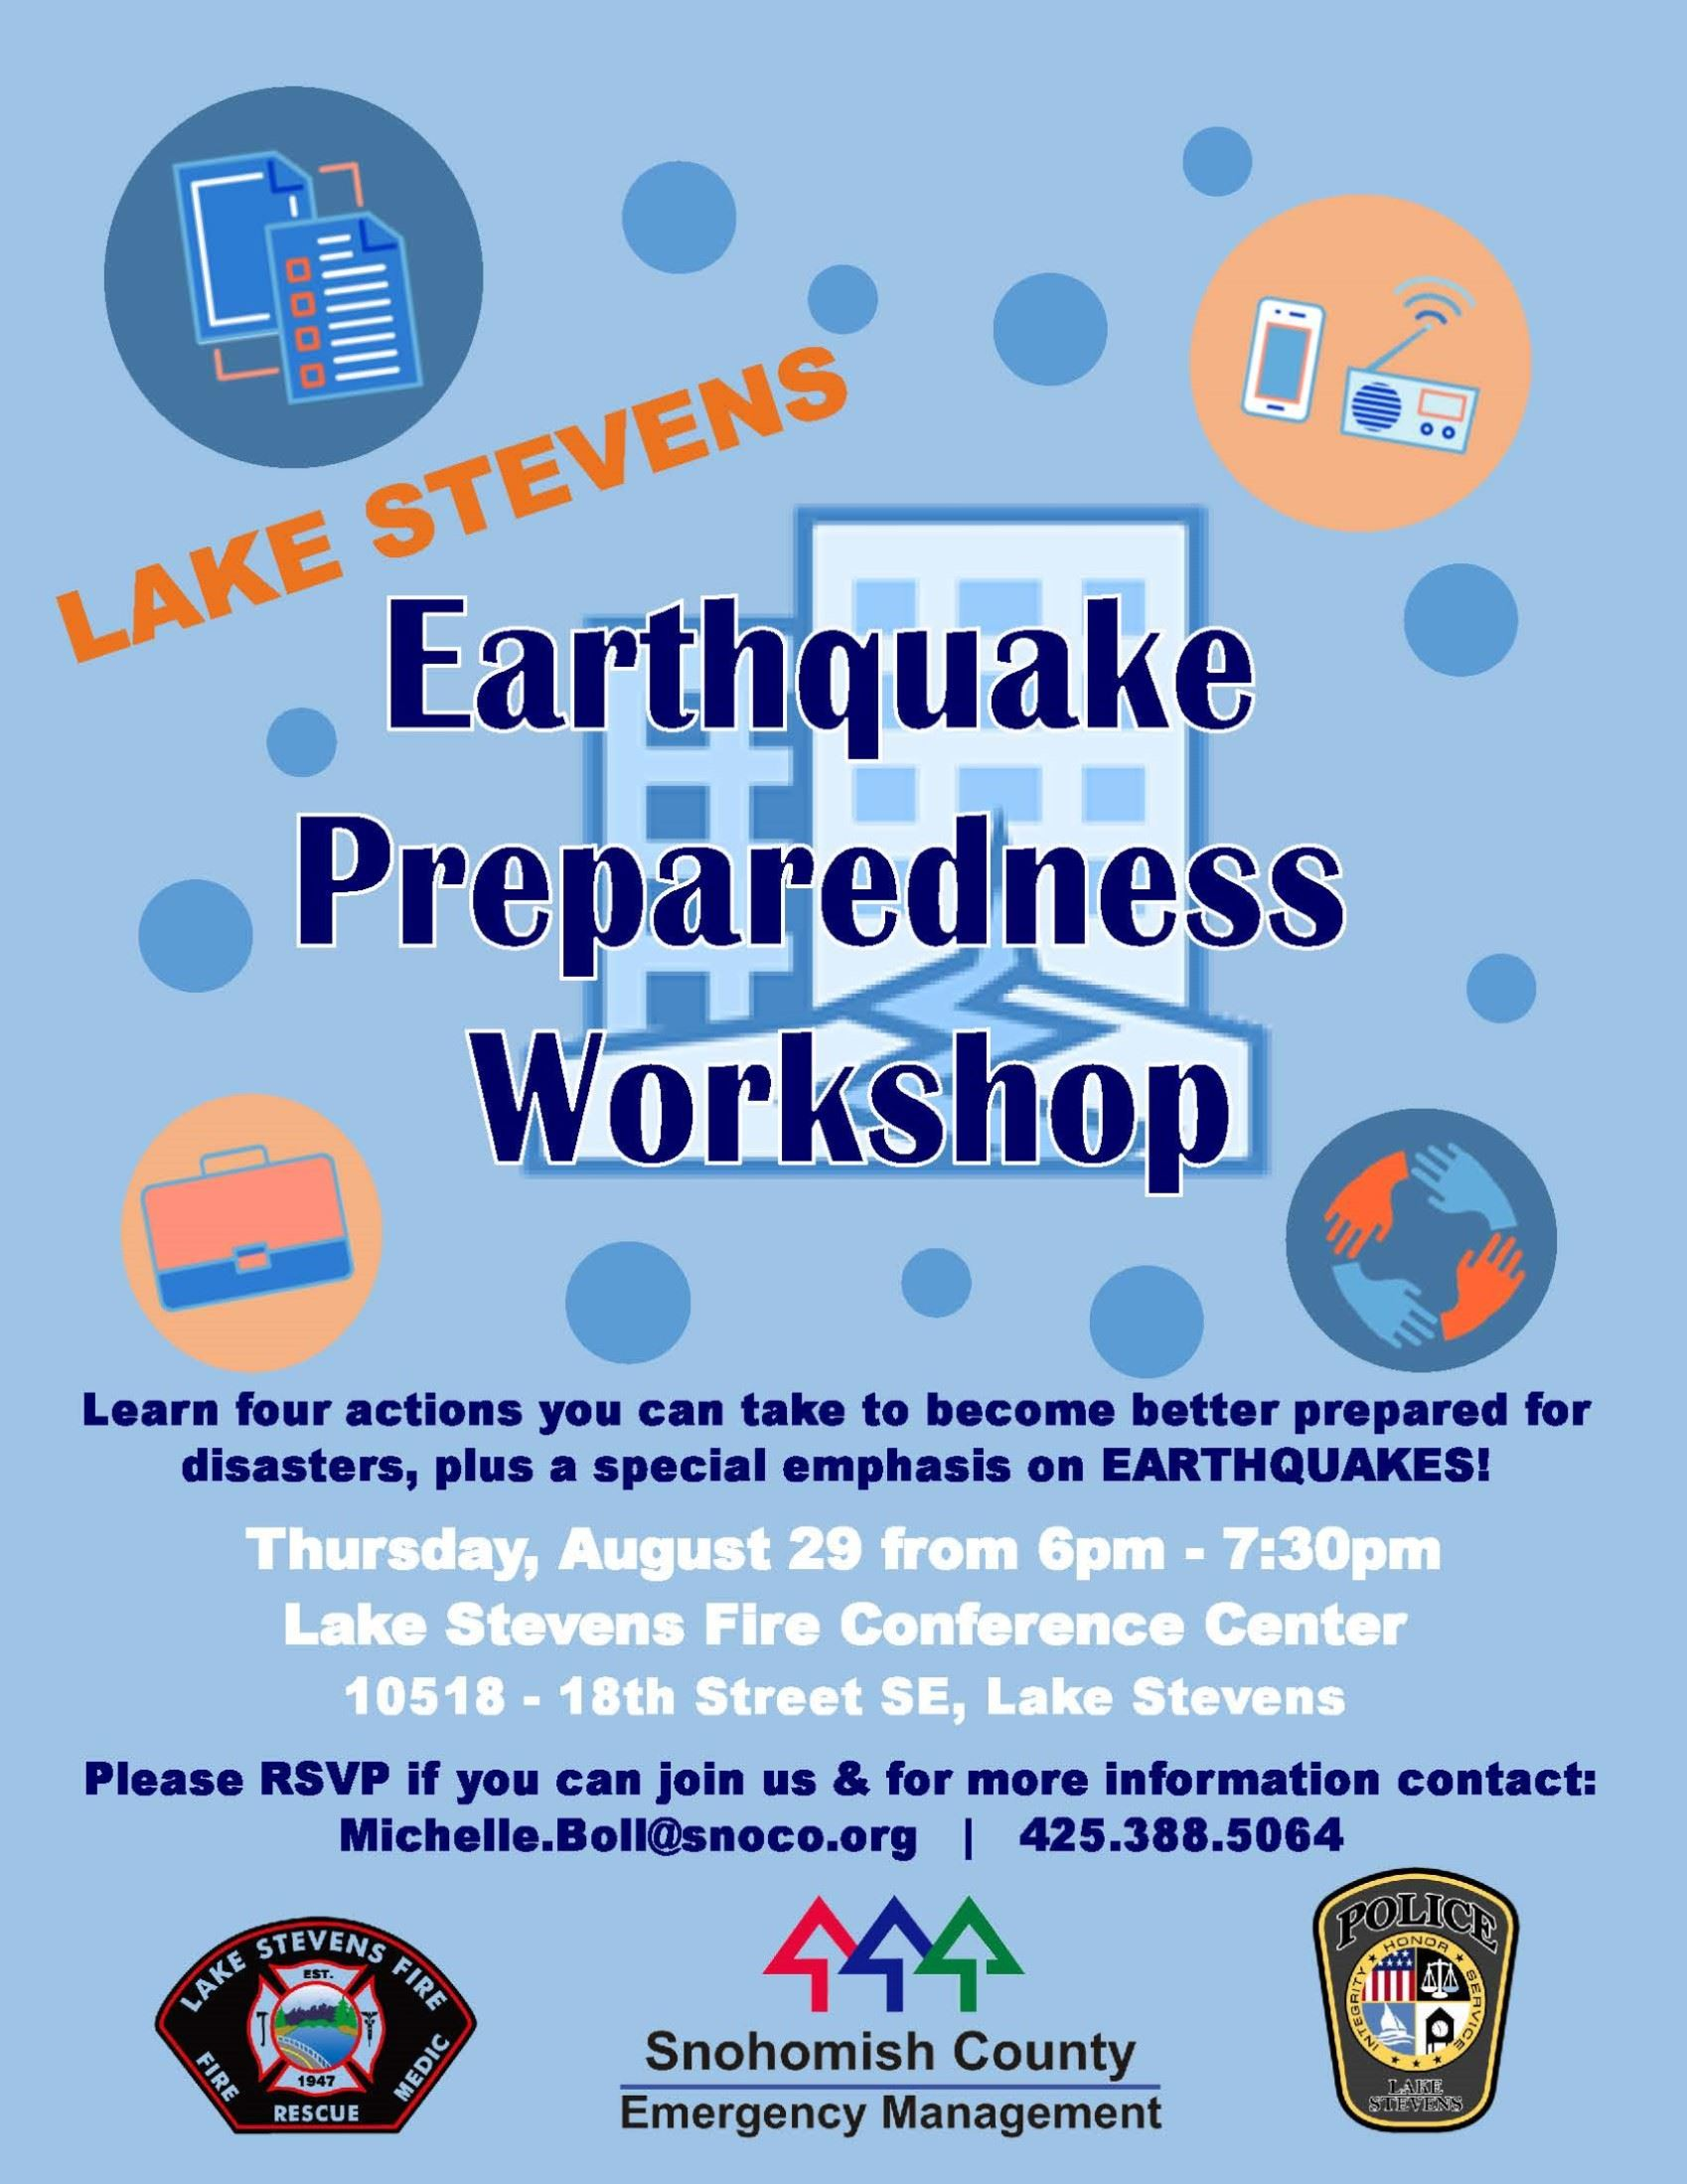 19-08-29 Lake Stevens Earthquake Preparedness Workshop Compressed